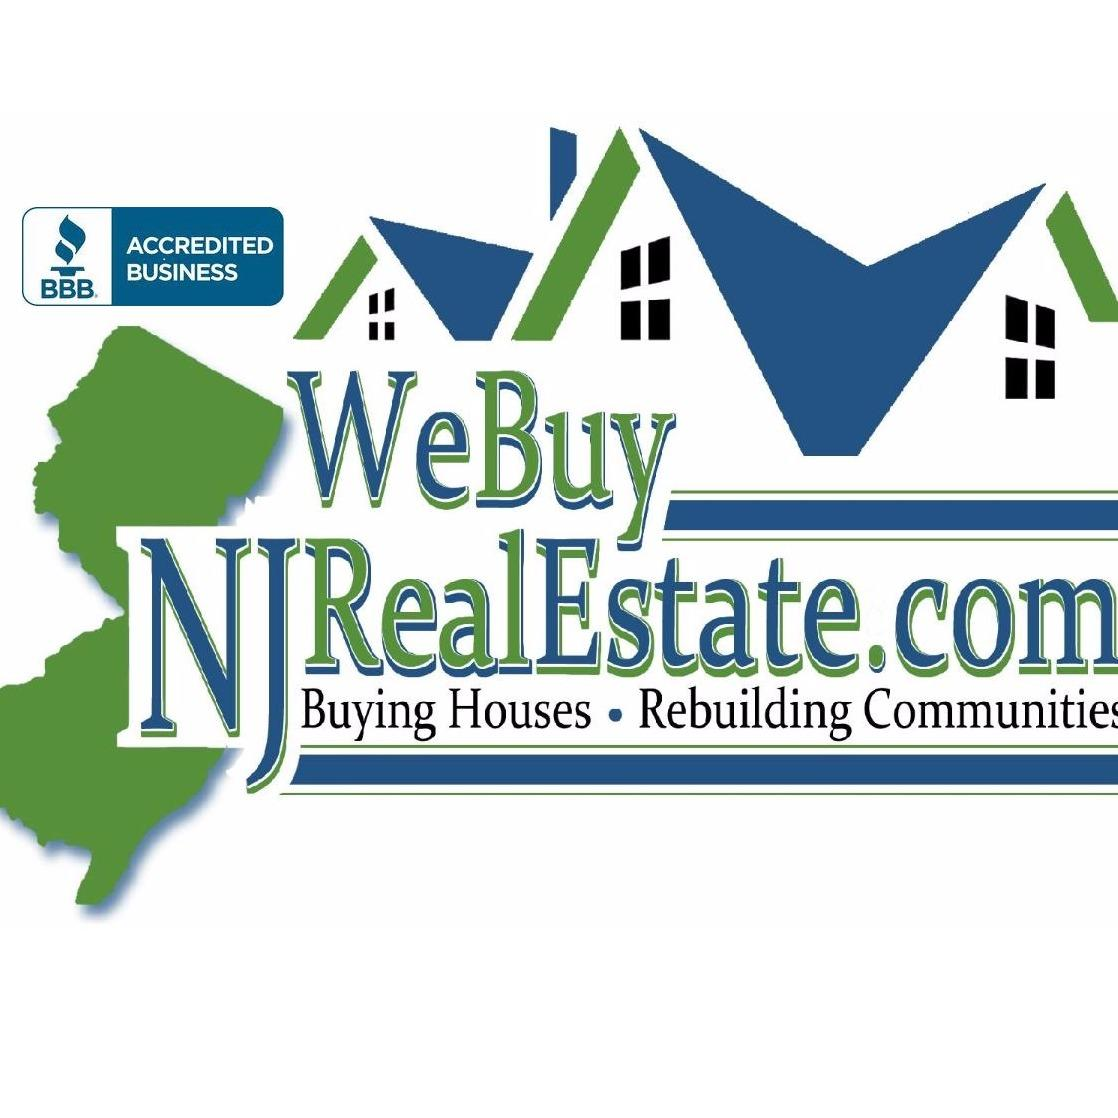 We Buy NJ Real Estate, LLC